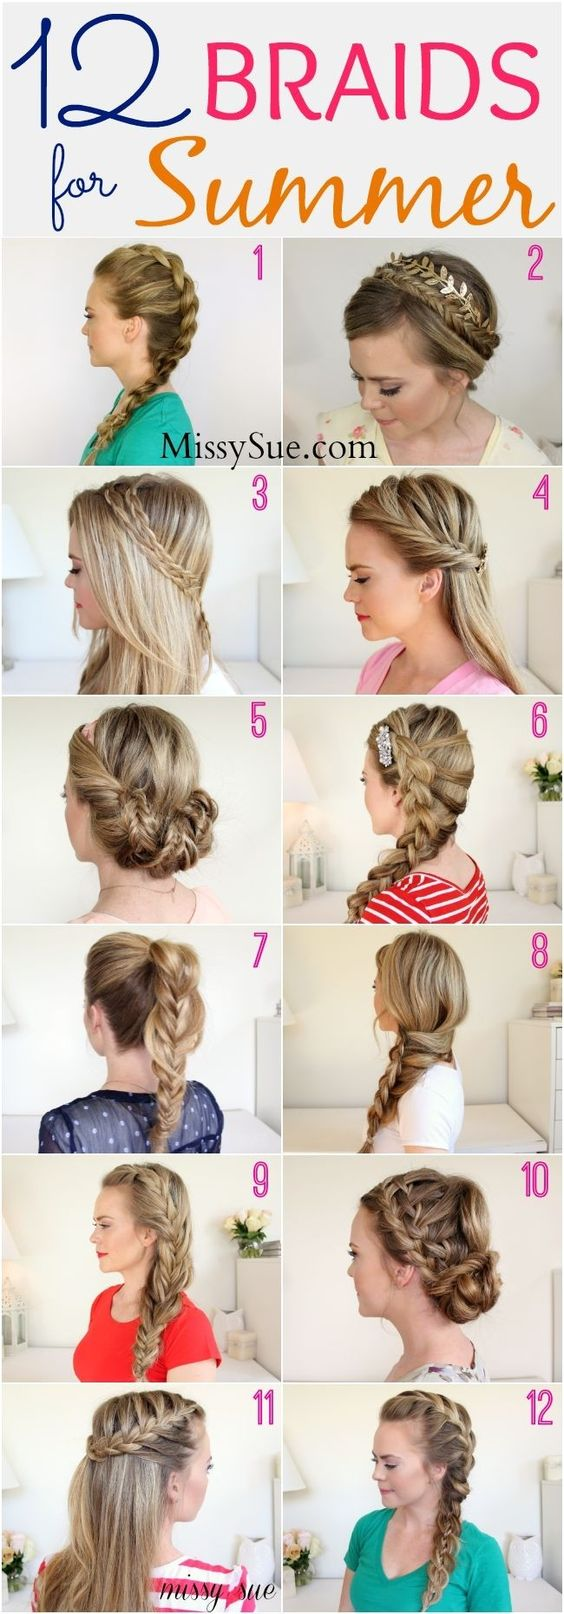 Tresse Corde Cheveux Tresss And Coiffures Ondules On Pinterest